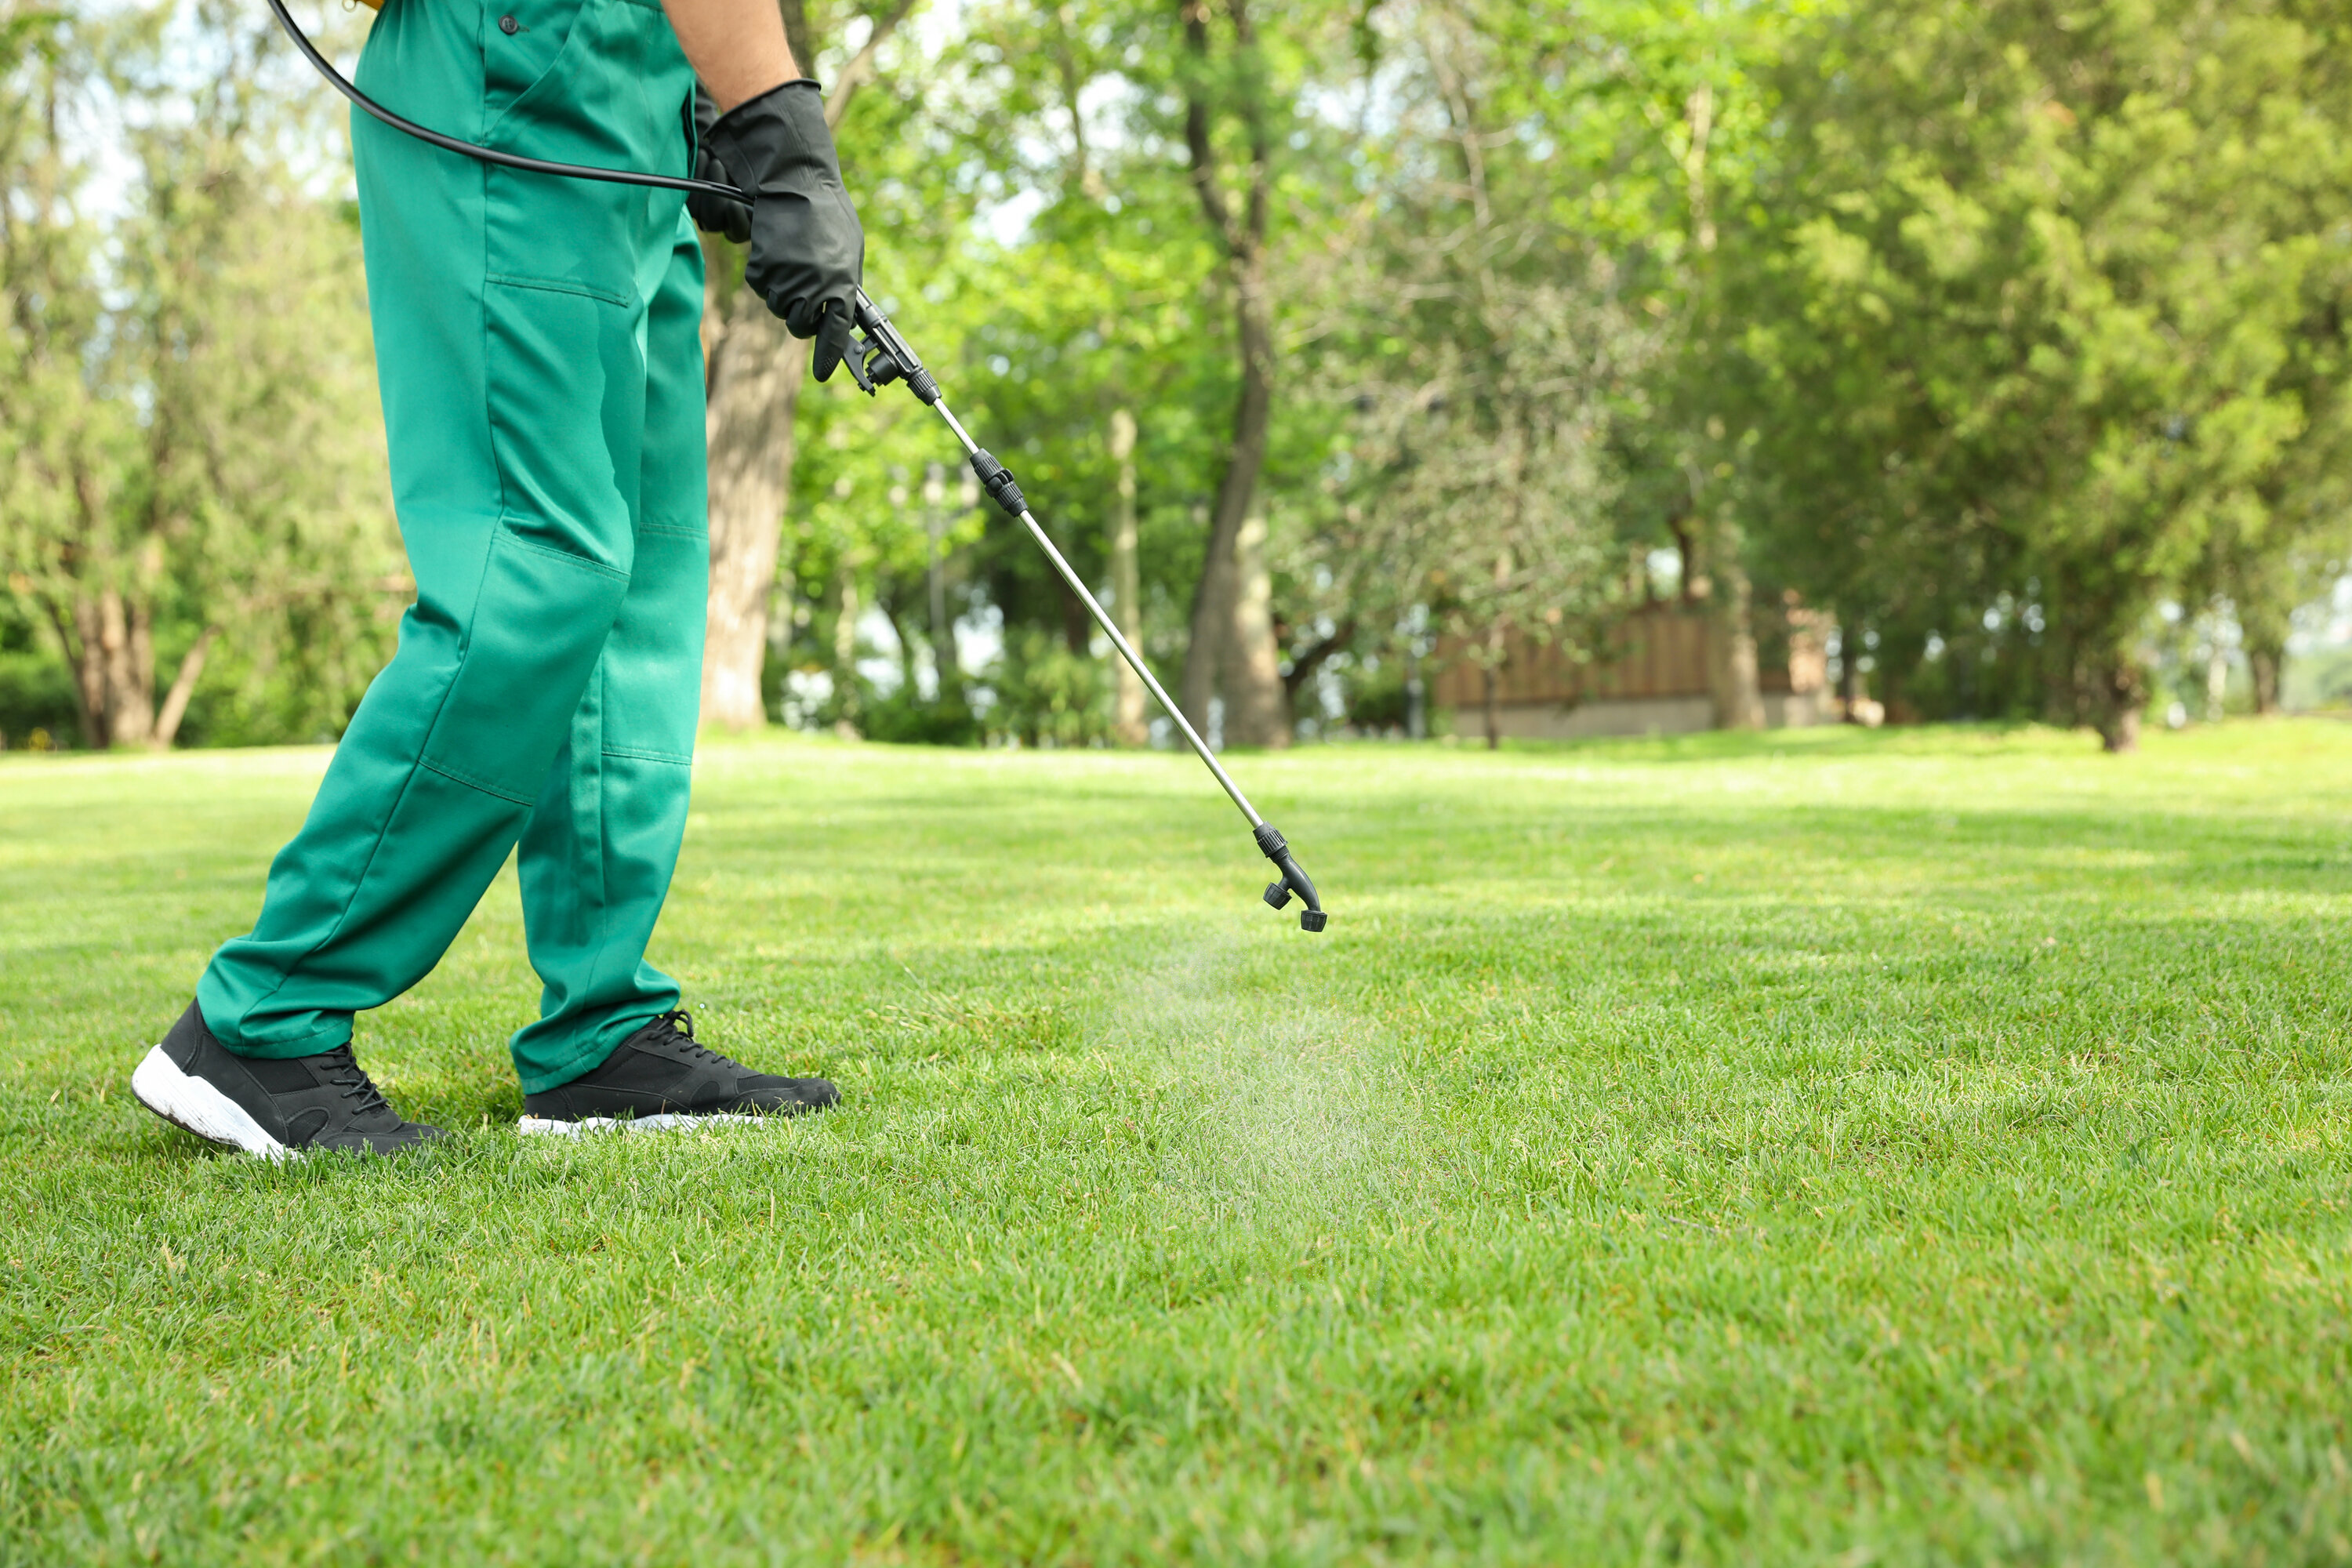 Worker in green exterminator gear spraying pesticide into the grass